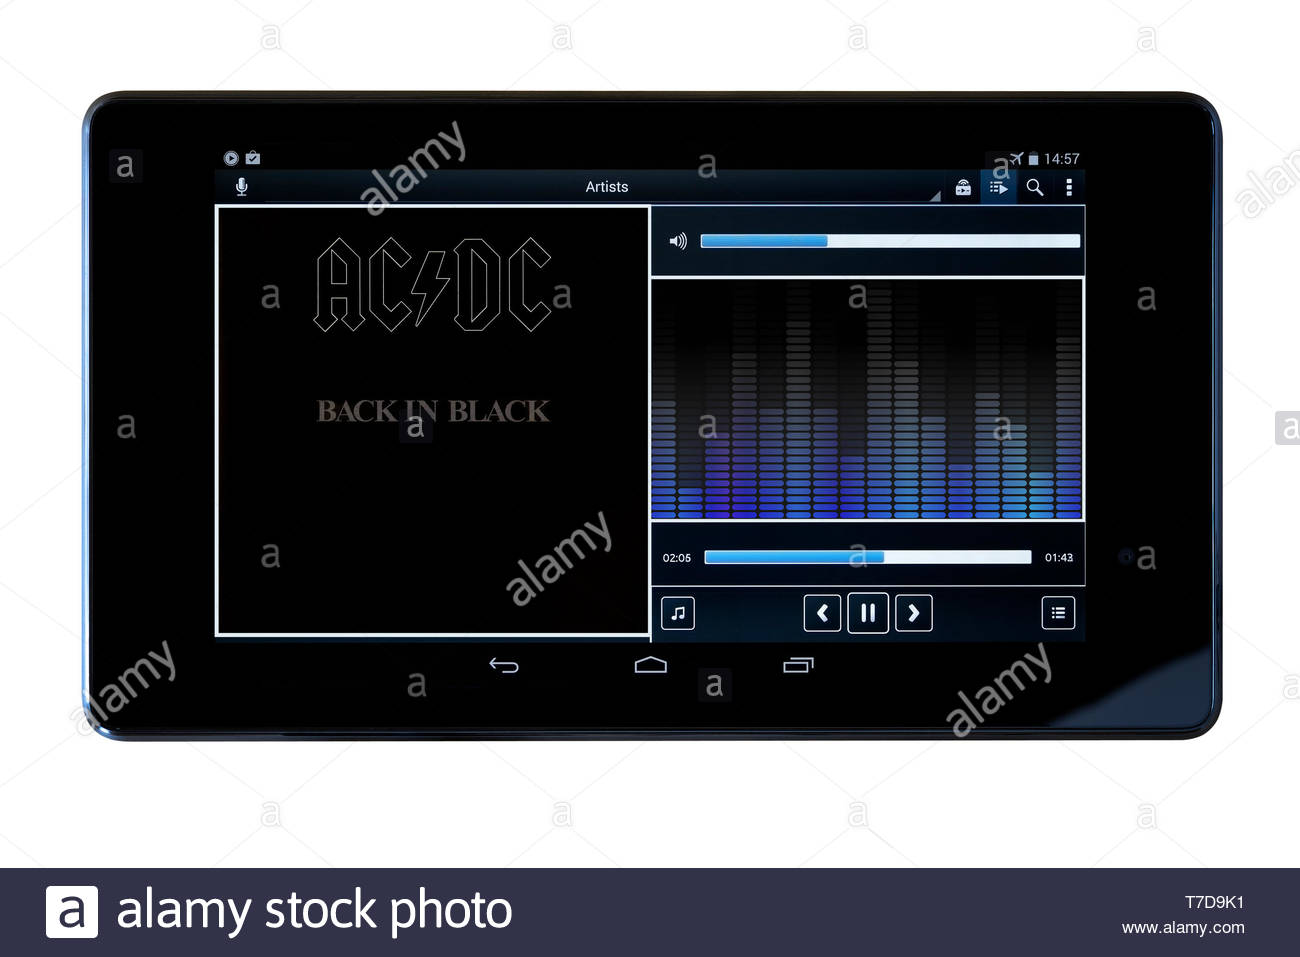 Ac Dc Back In Black Mp3 Album Art On Pc Tablet England Stock Photo Alamy